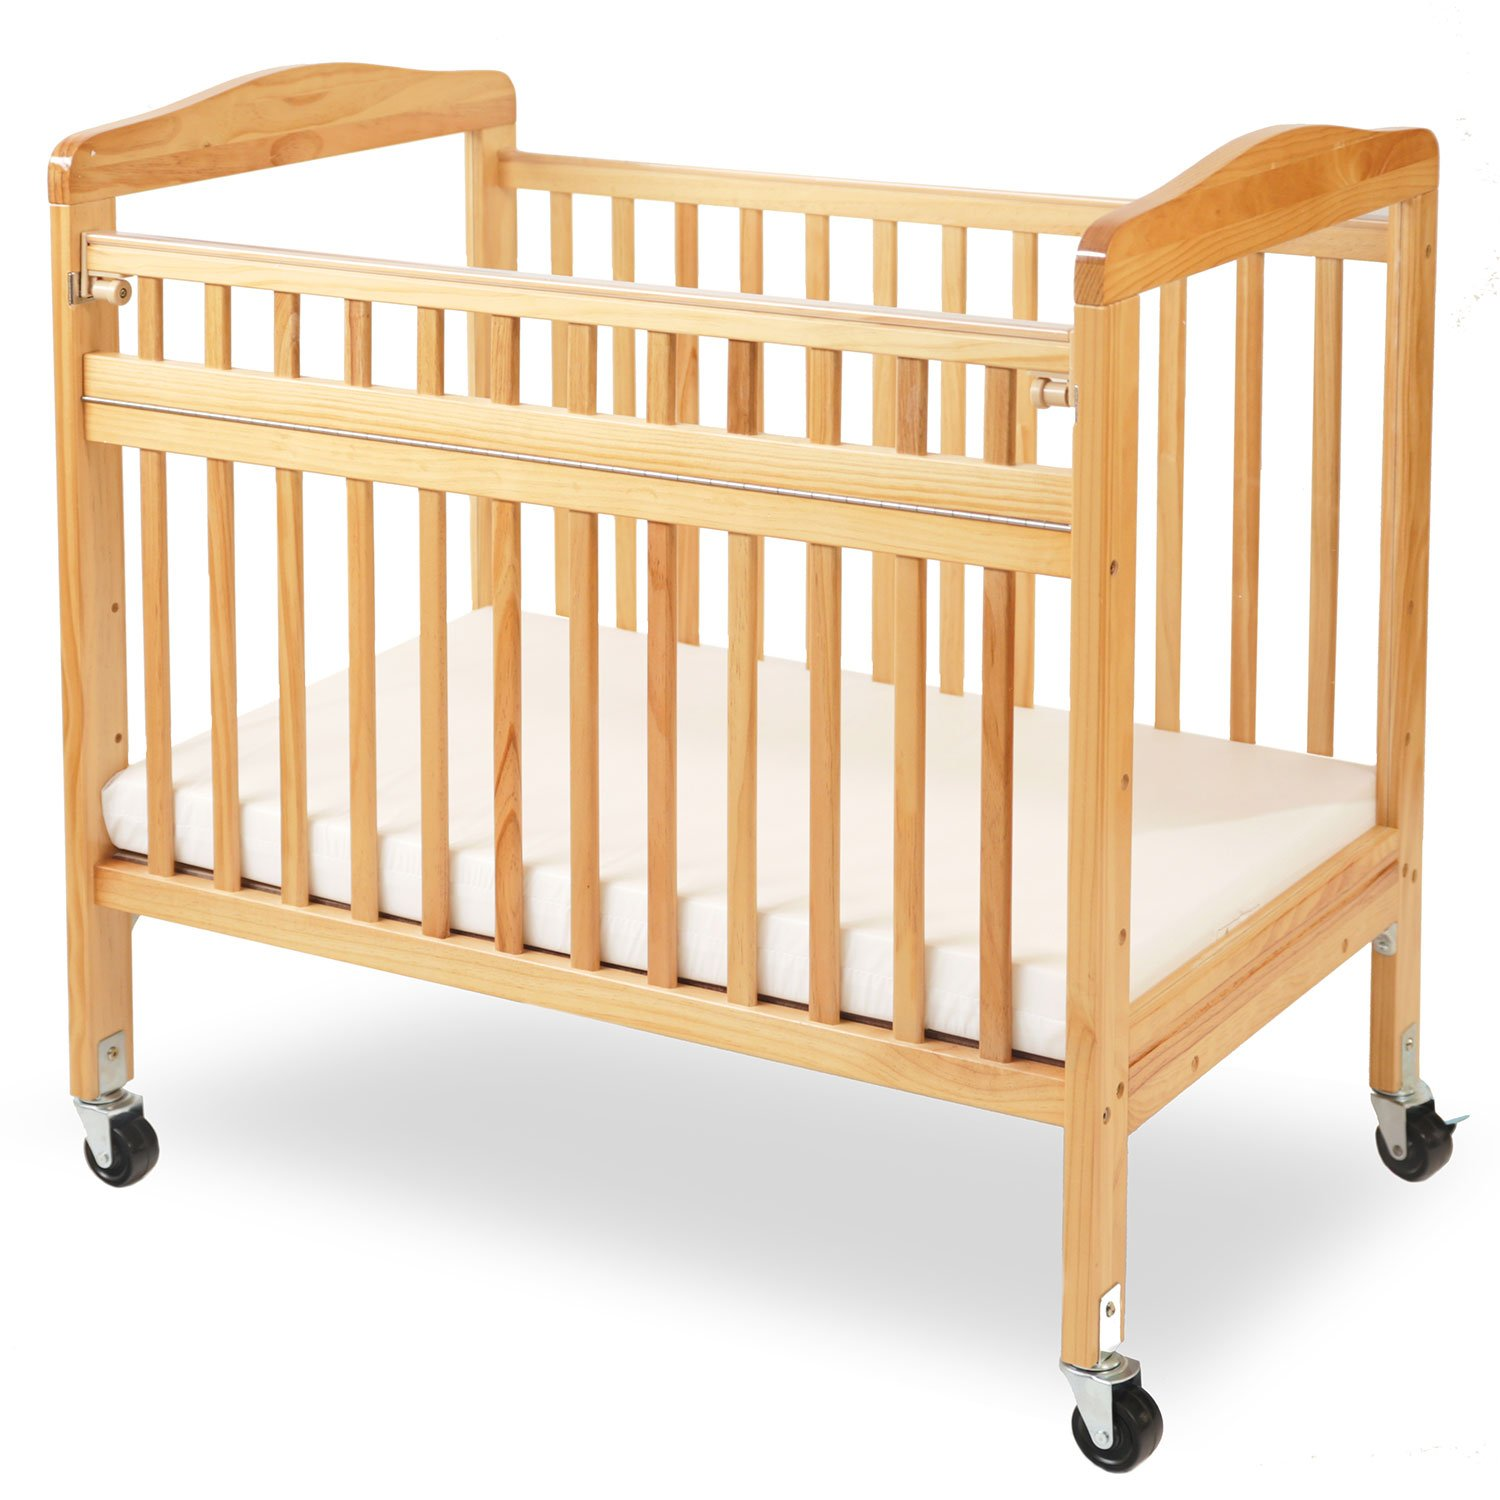 LA Baby Compact Non-Folding Wooden Window Crib with Safety Gate, Natural by L.A. Baby